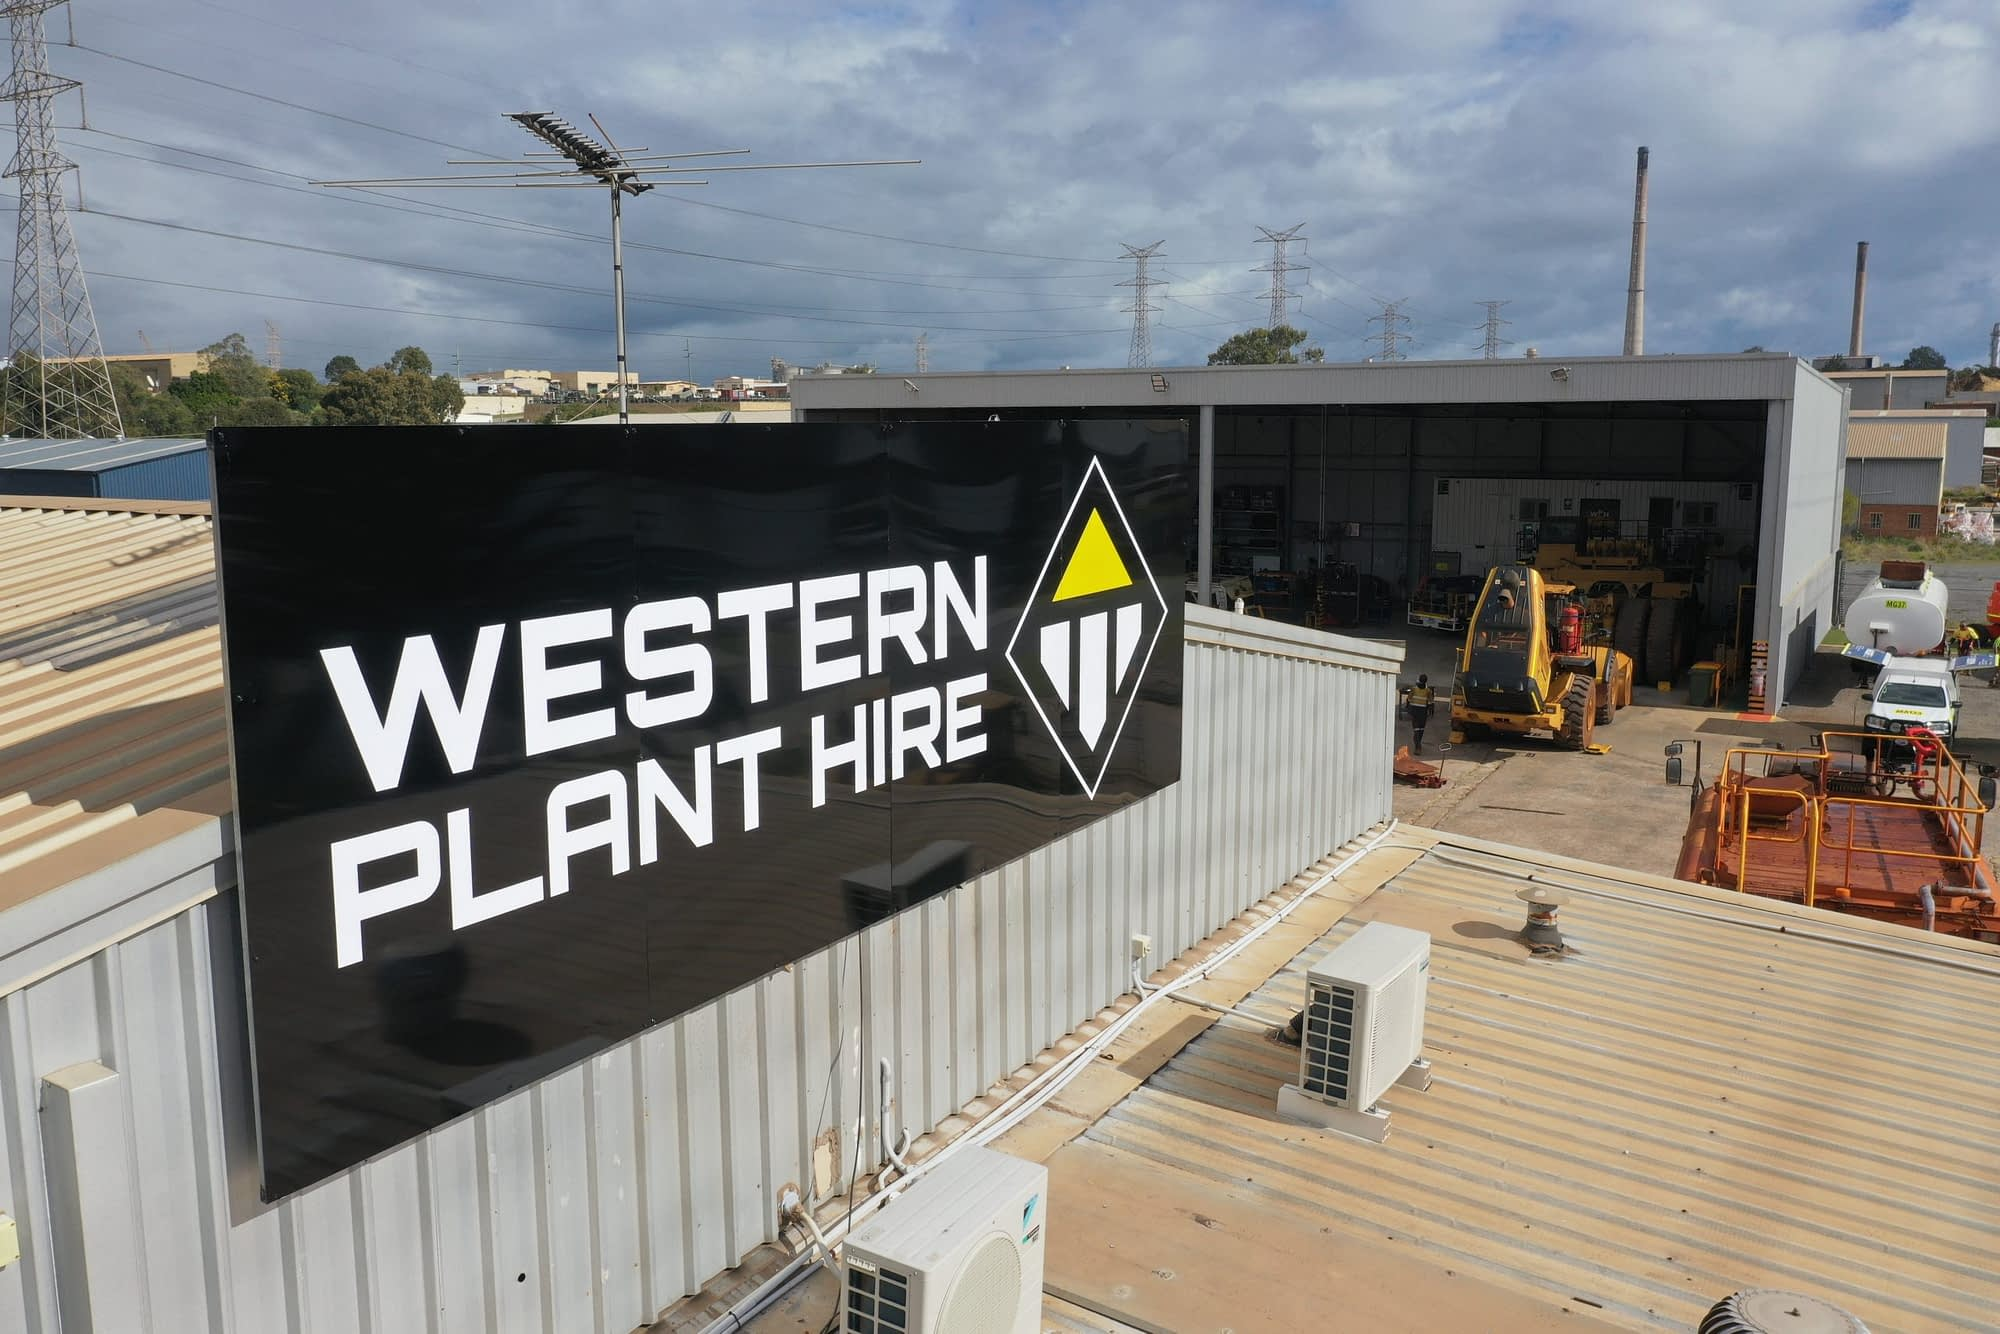 Western Plant Hire